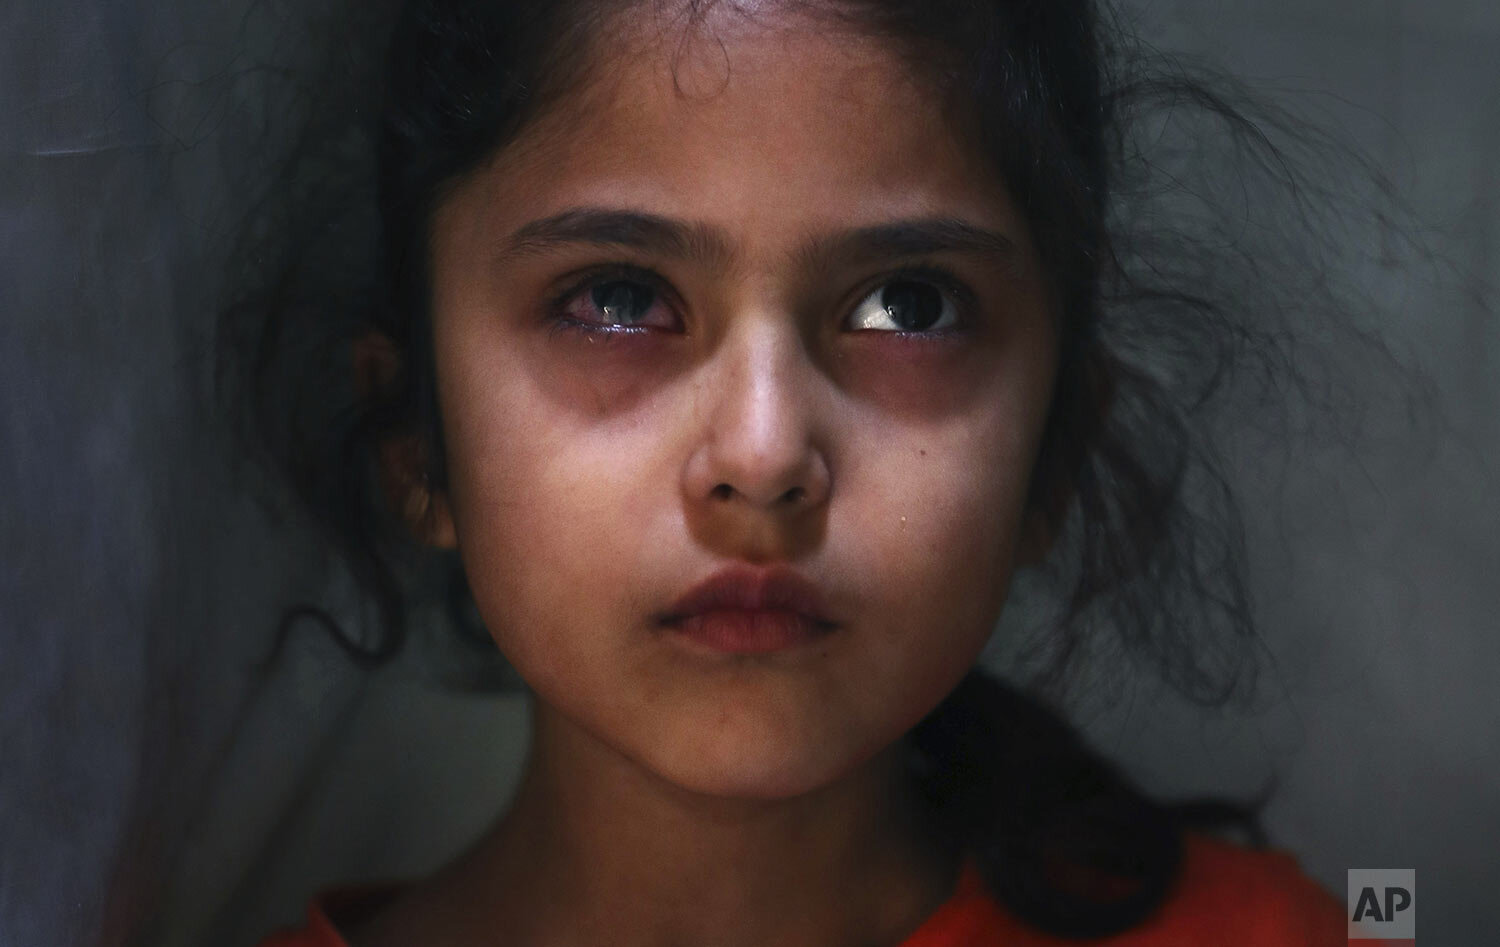 Muneefa Nazir, 6, a Kashmiri girl whose right eye was hit by a marble ball shot allegedly by Indian Paramilitary soldiers on Aug. 12, stands outside her home in Srinagar, Indian controlled Kashmir, Tuesday, Sept. 17, 2019. (AP Photo/Mukhtar Khan)